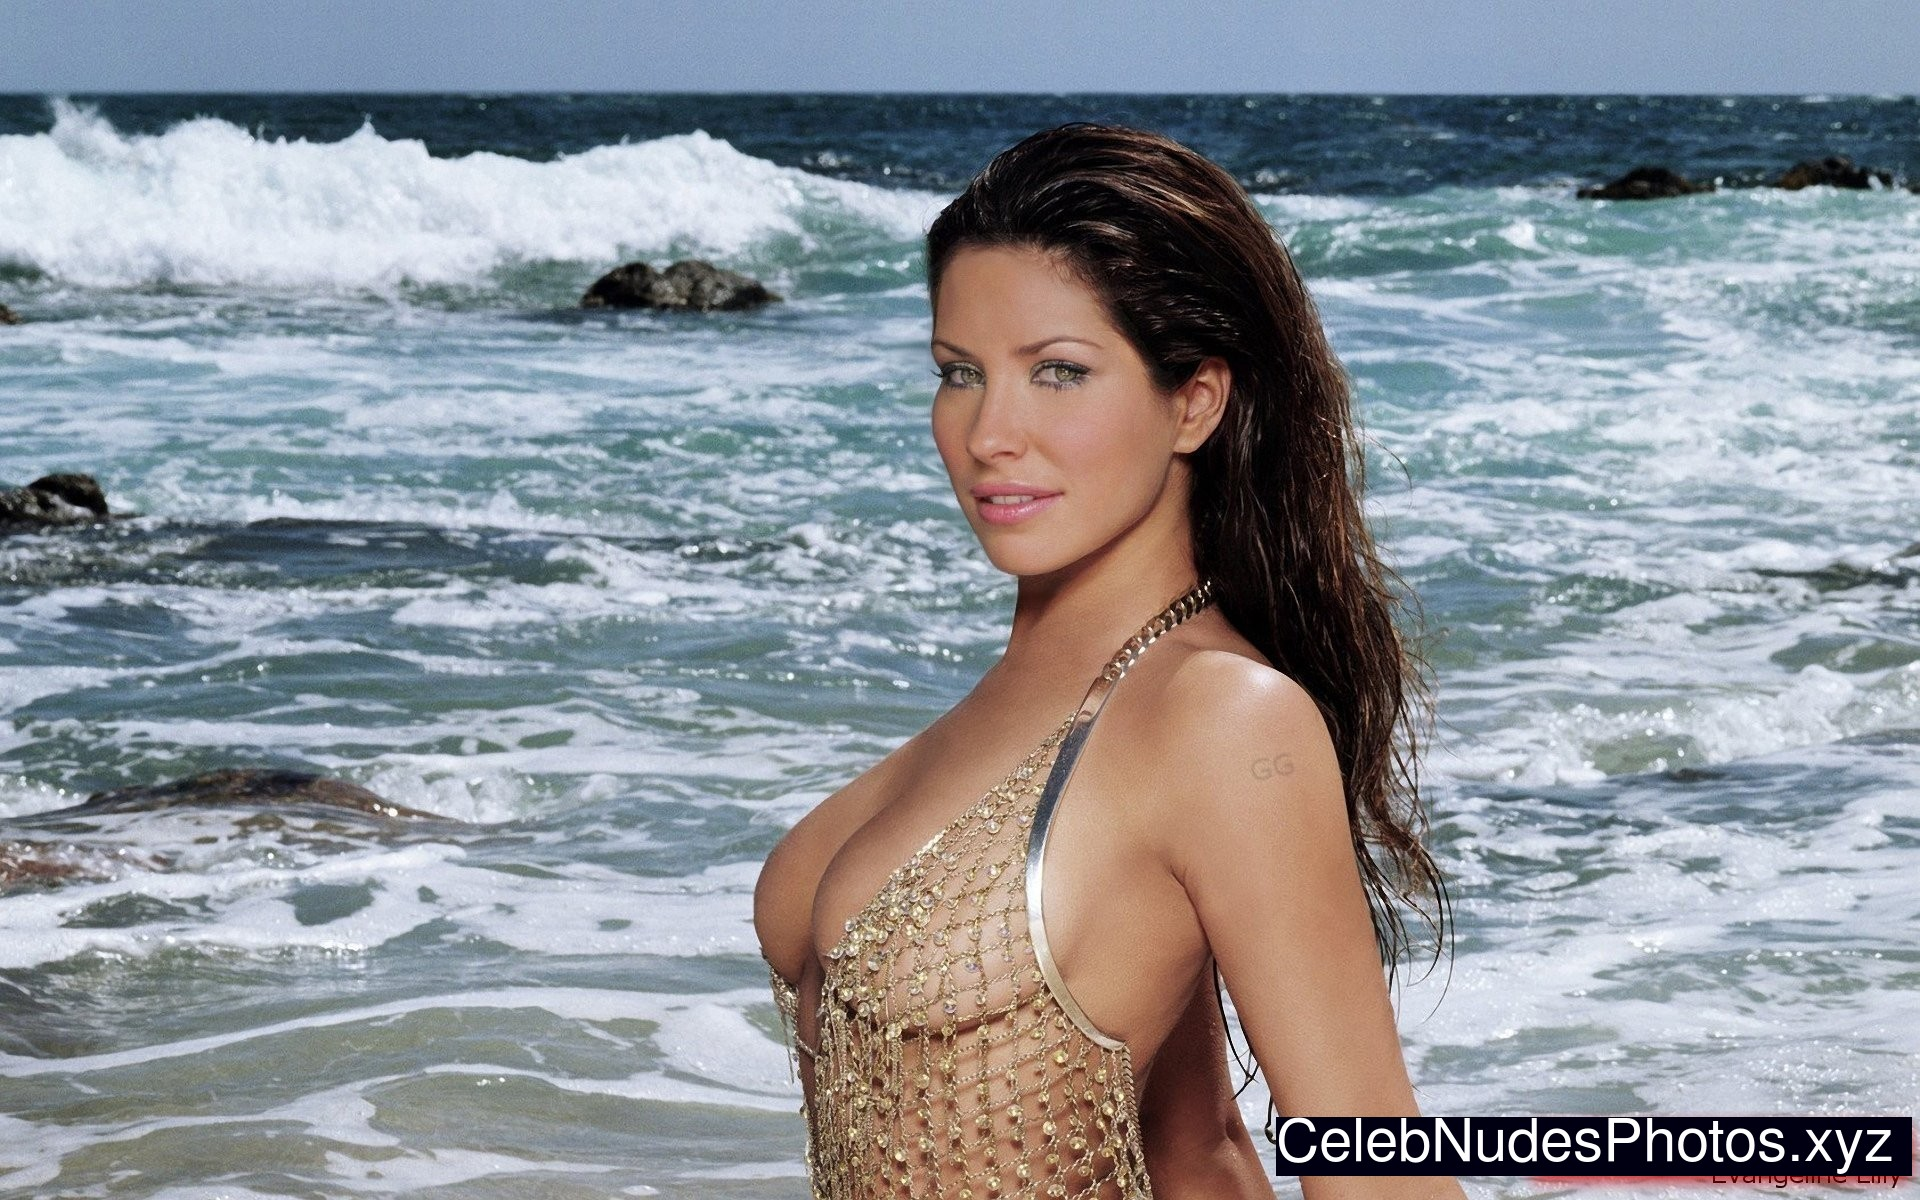 Evangeline Lilly Celebrity Nude Pic sexy 13